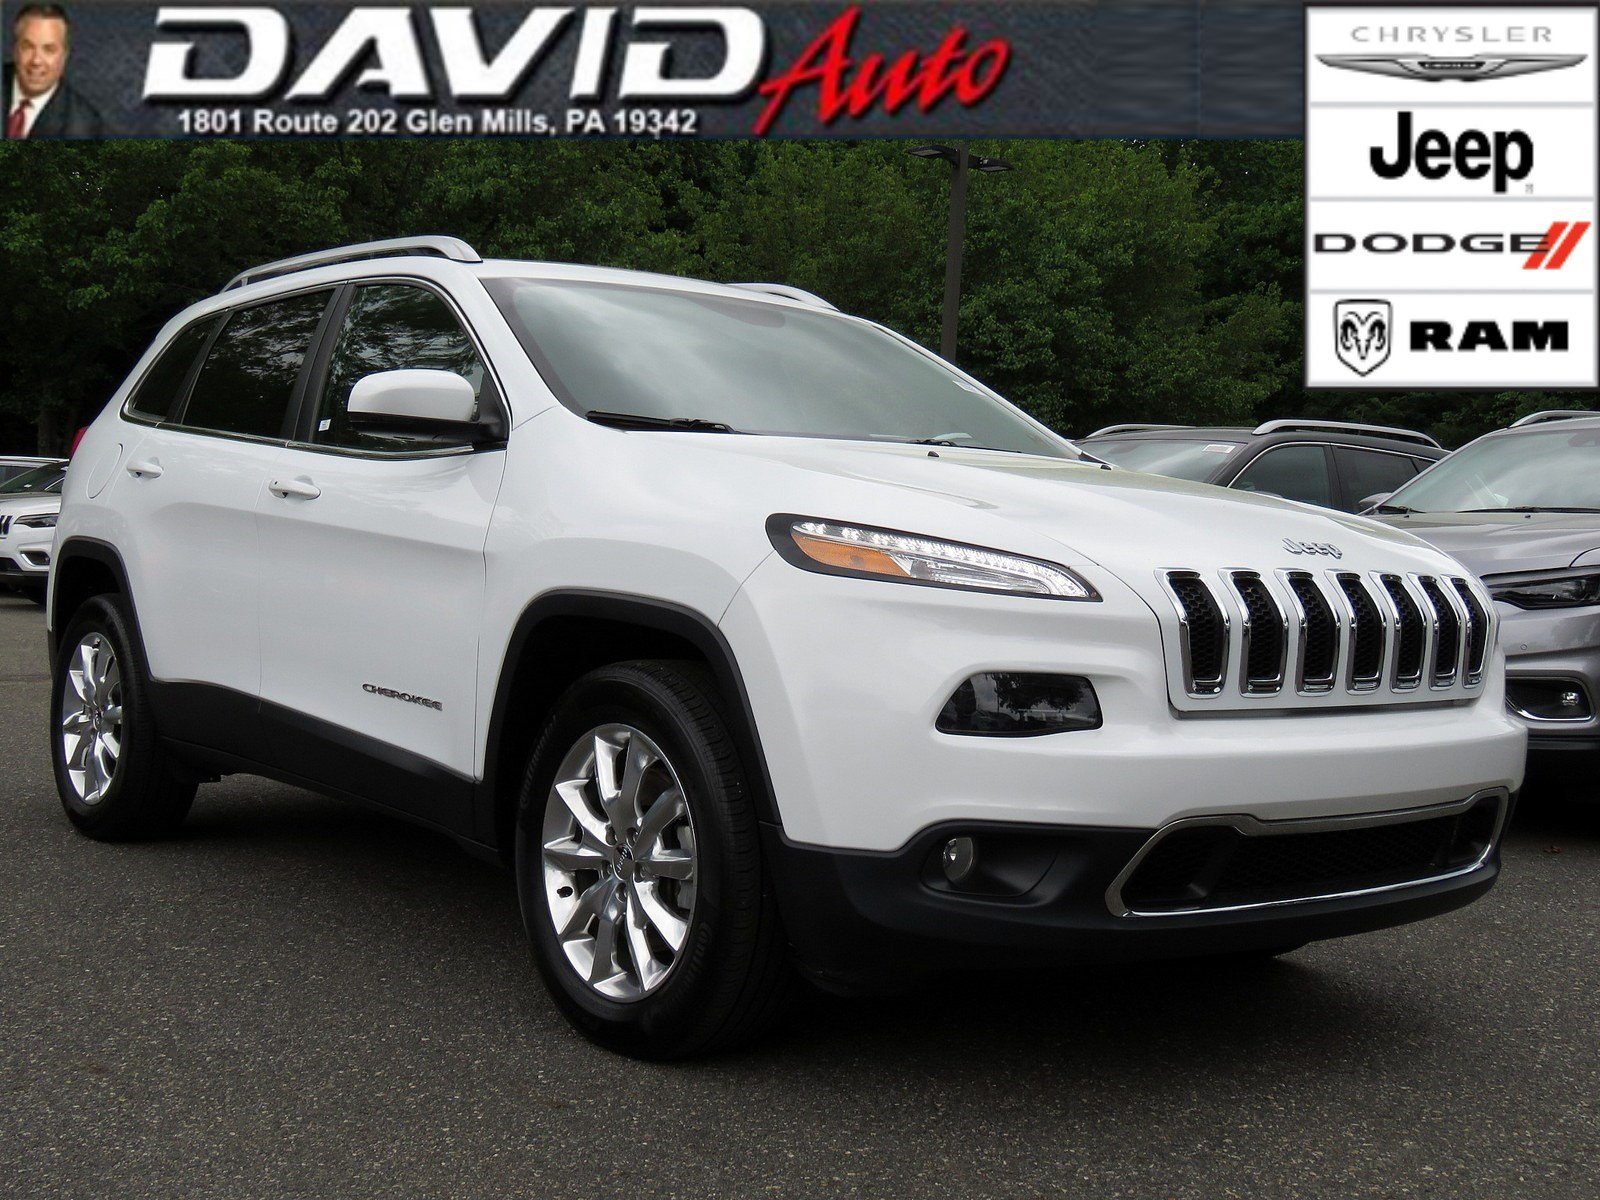 Certified Pre Owned 2016 Jeep Cherokee Limited Sport Utility in Glen